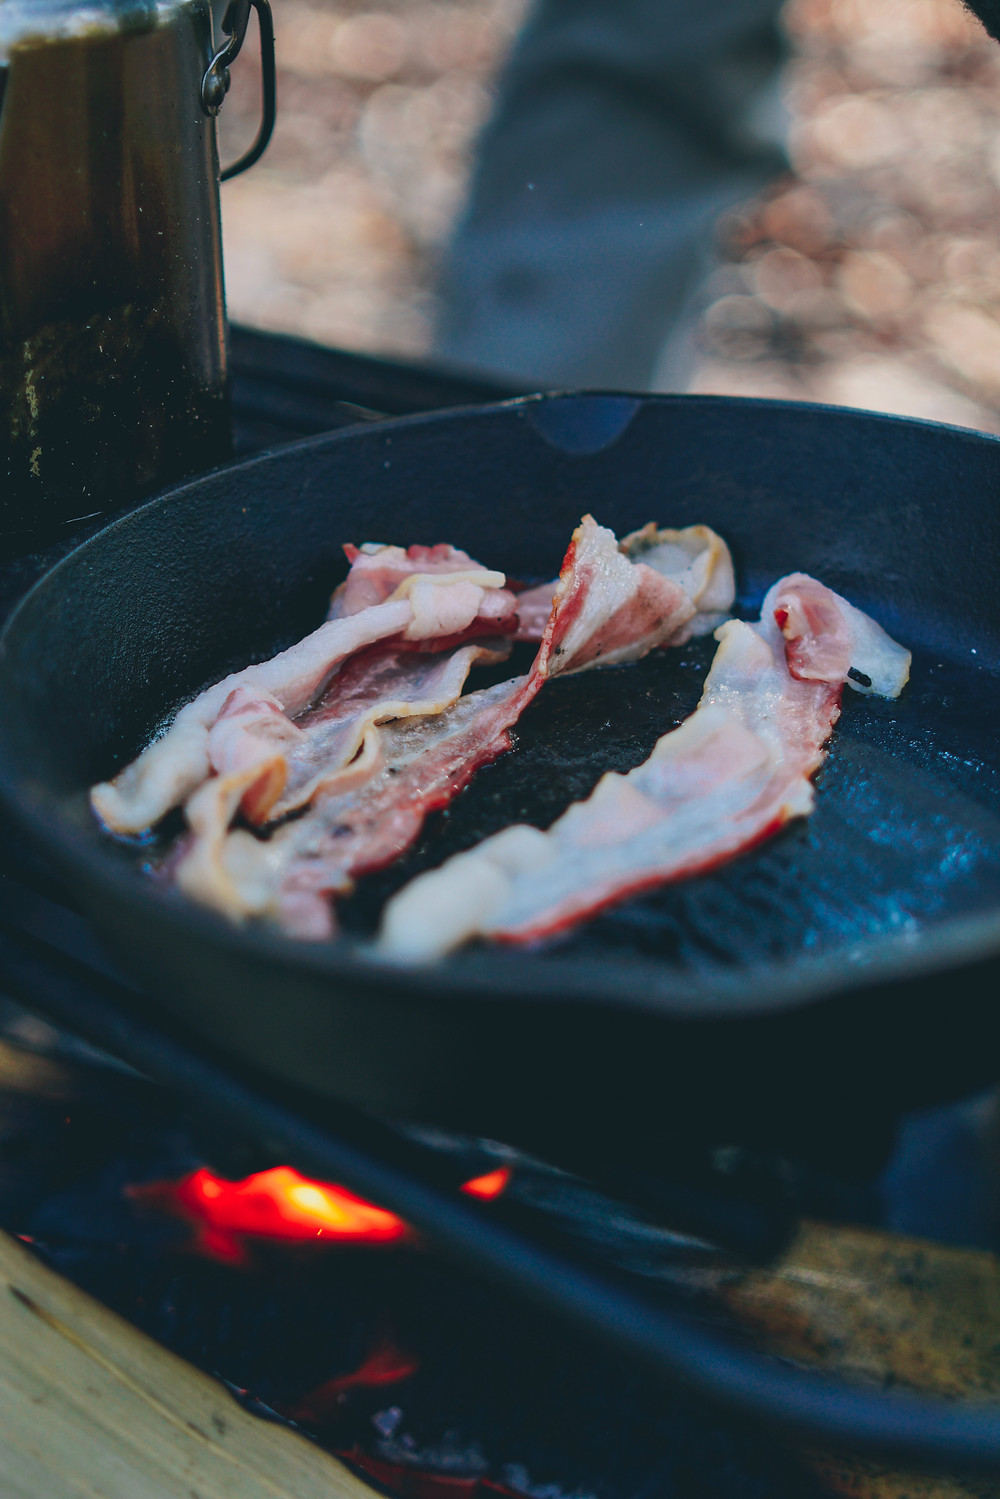 Bacon being cooked outdoors